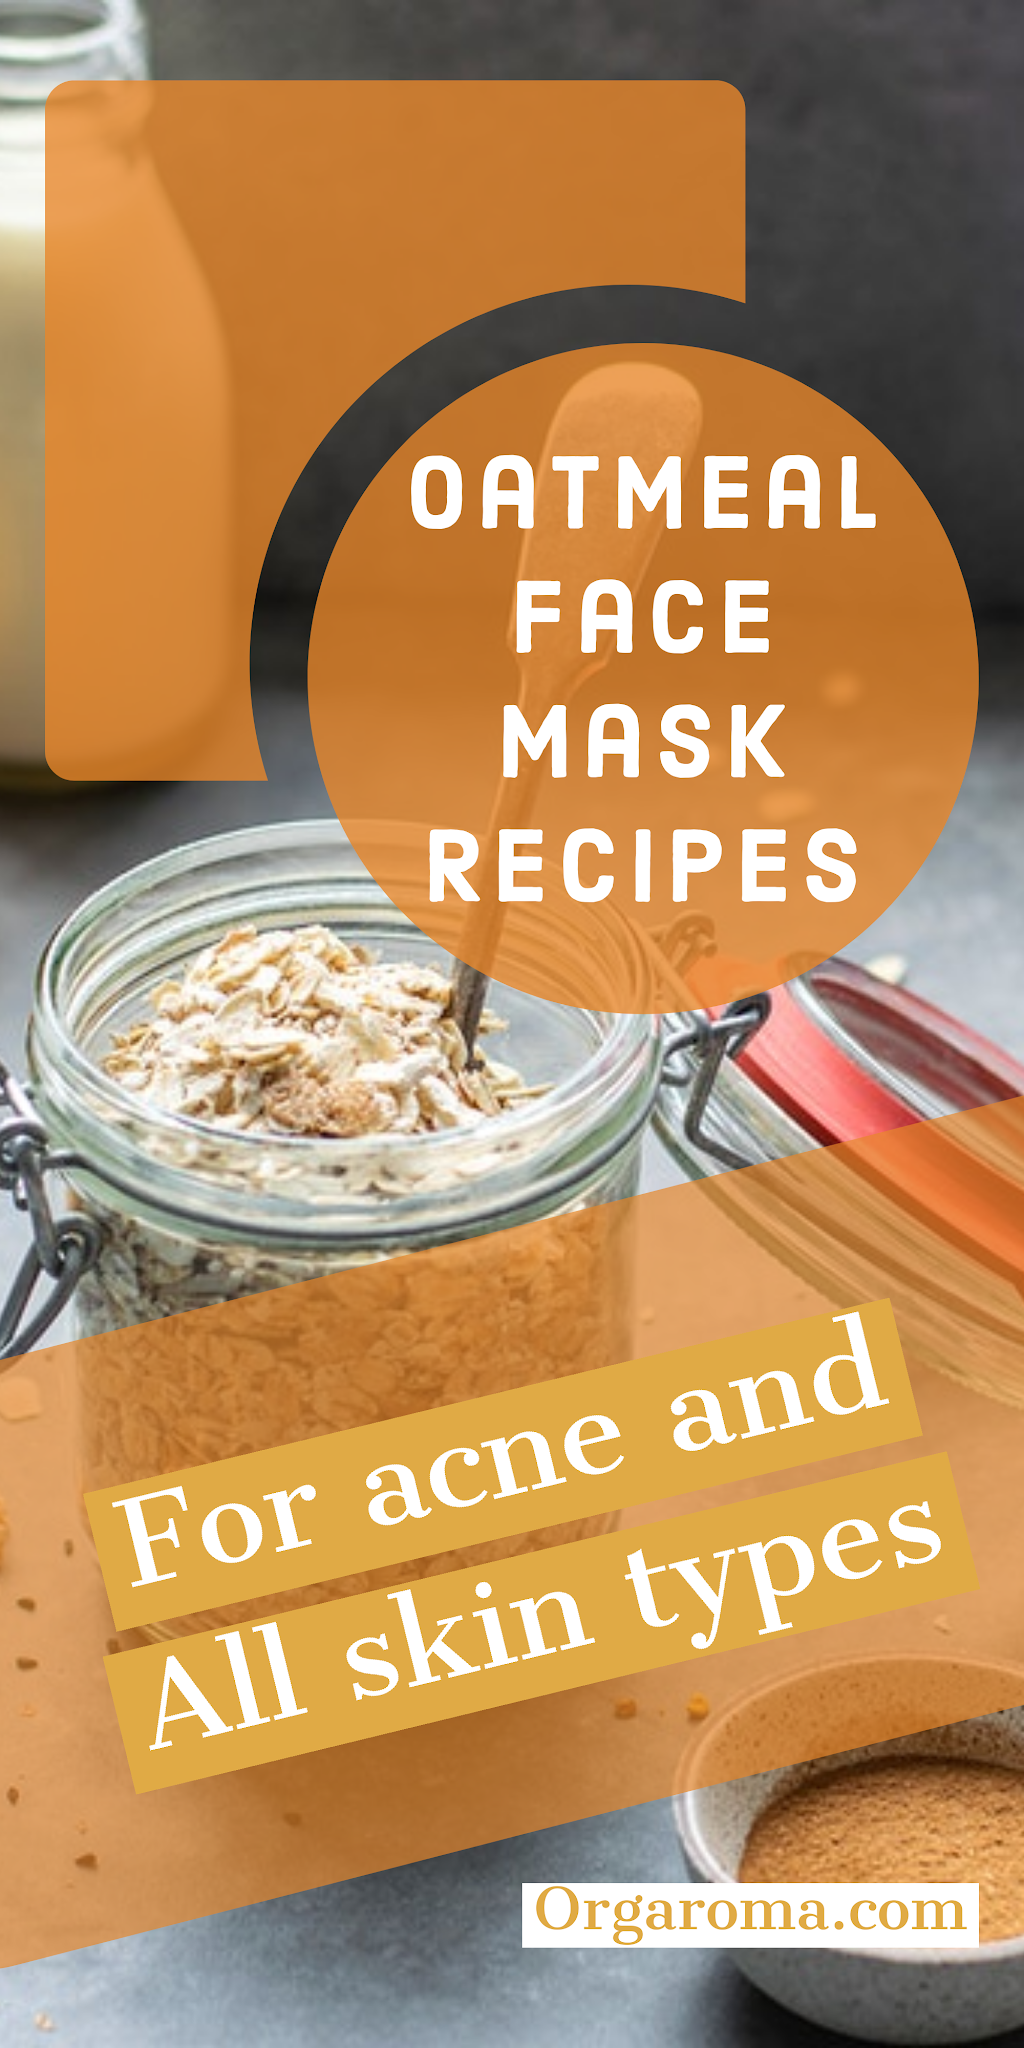 Diy Oatmeal Face Mask For Acne And All Skin Types Mask Diyfacemask In 2020 Oatmeal Face Mask Diy Oatmeal Face Mask Face Mask Recipe